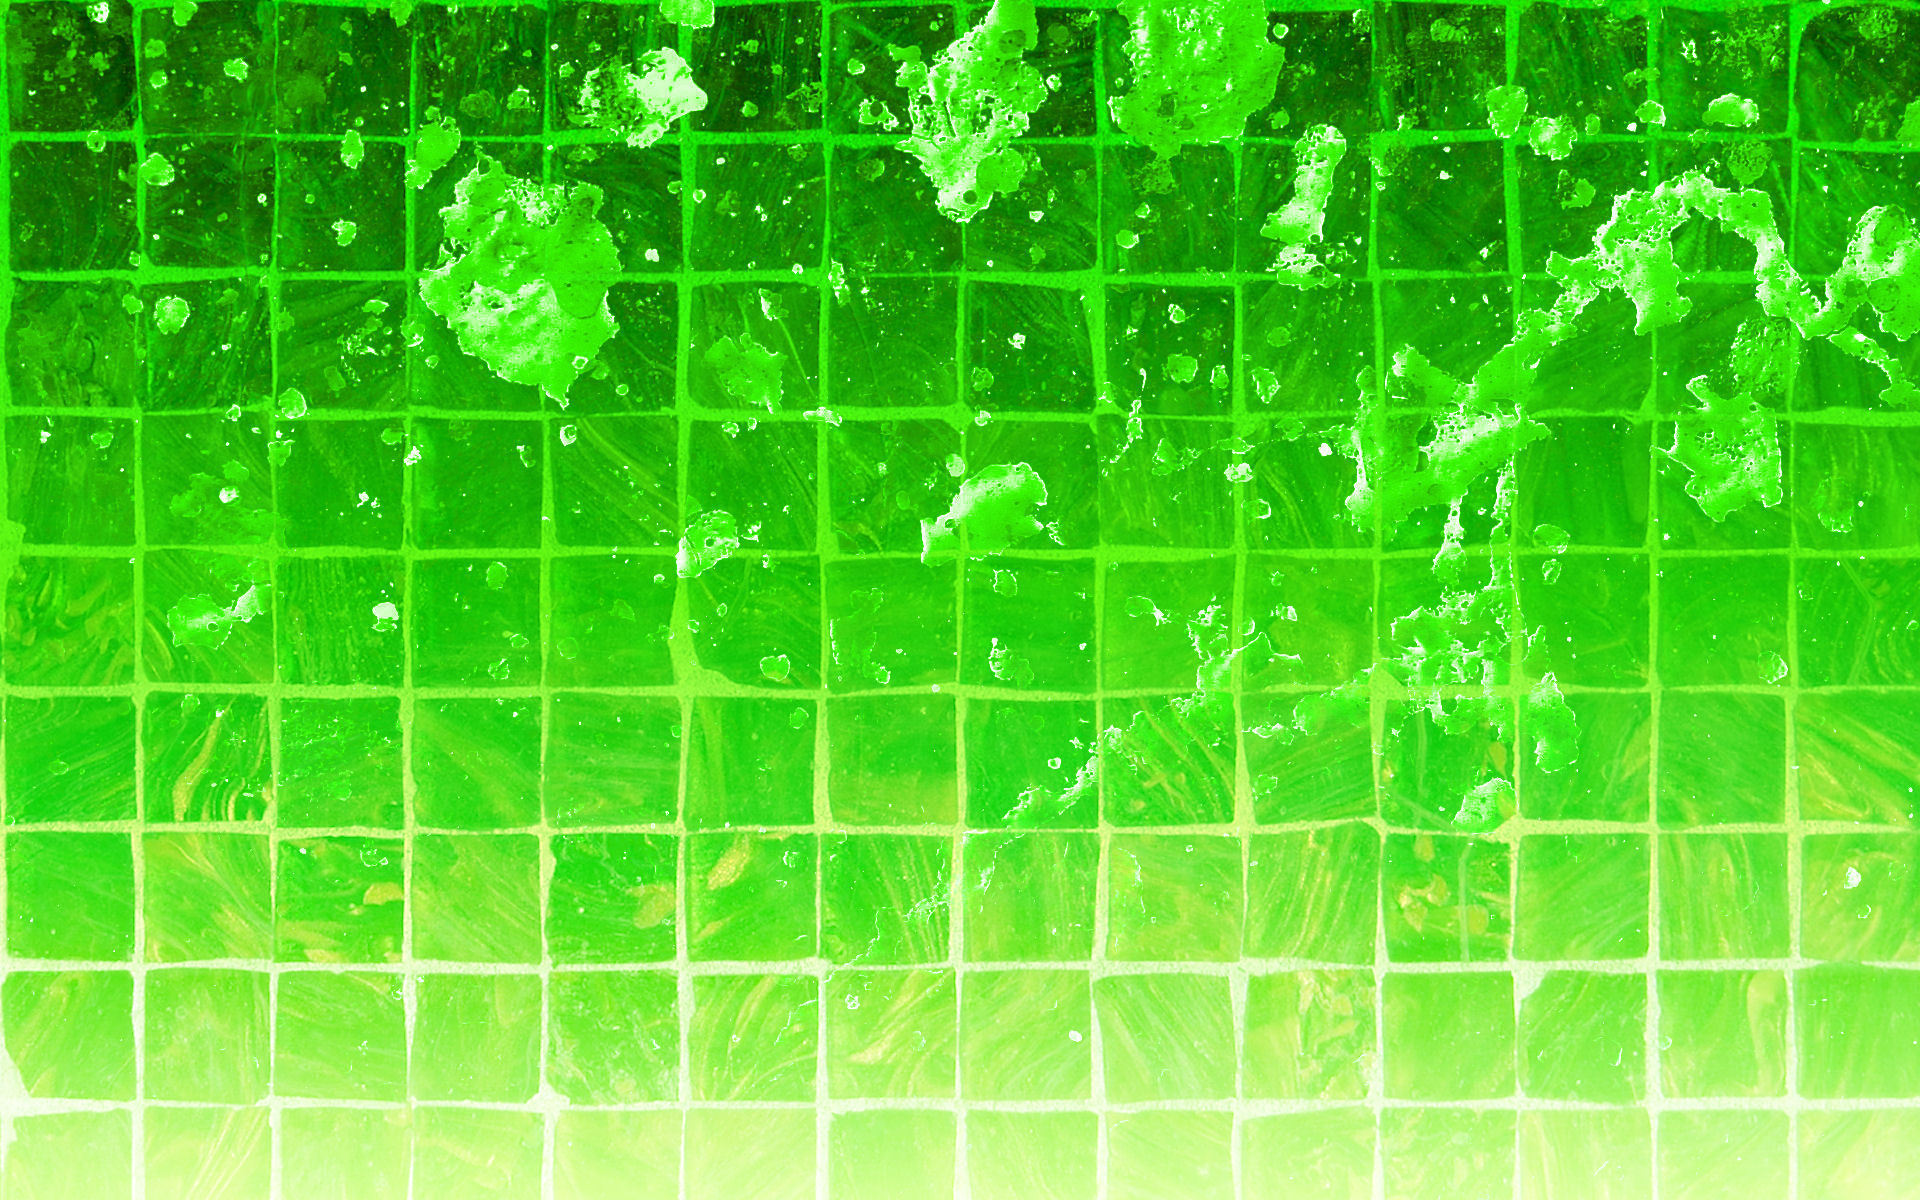 Green Wallpaper Green Splatter Tile Wallpaper